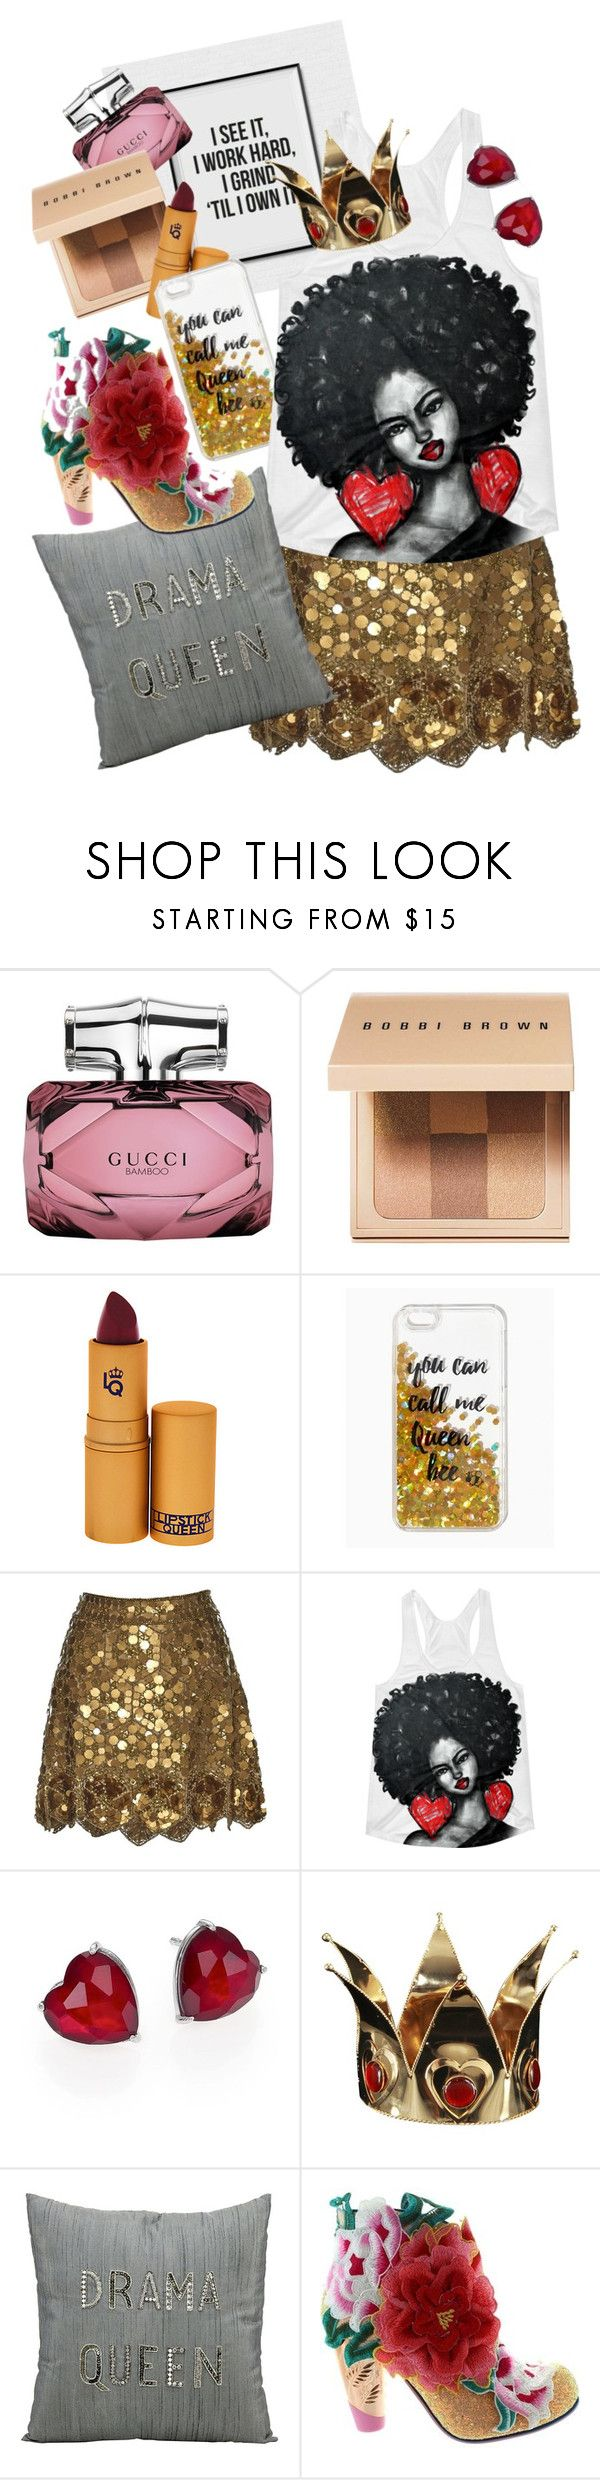 """queen."" by ducklemeg ❤ liked on Polyvore featuring Gucci, Bobbi Brown Cosmetics, Lipstick Queen, Queen Bee, Matthew Williamson, Adriana Orsini, Mina Victory and Irregular Choice"